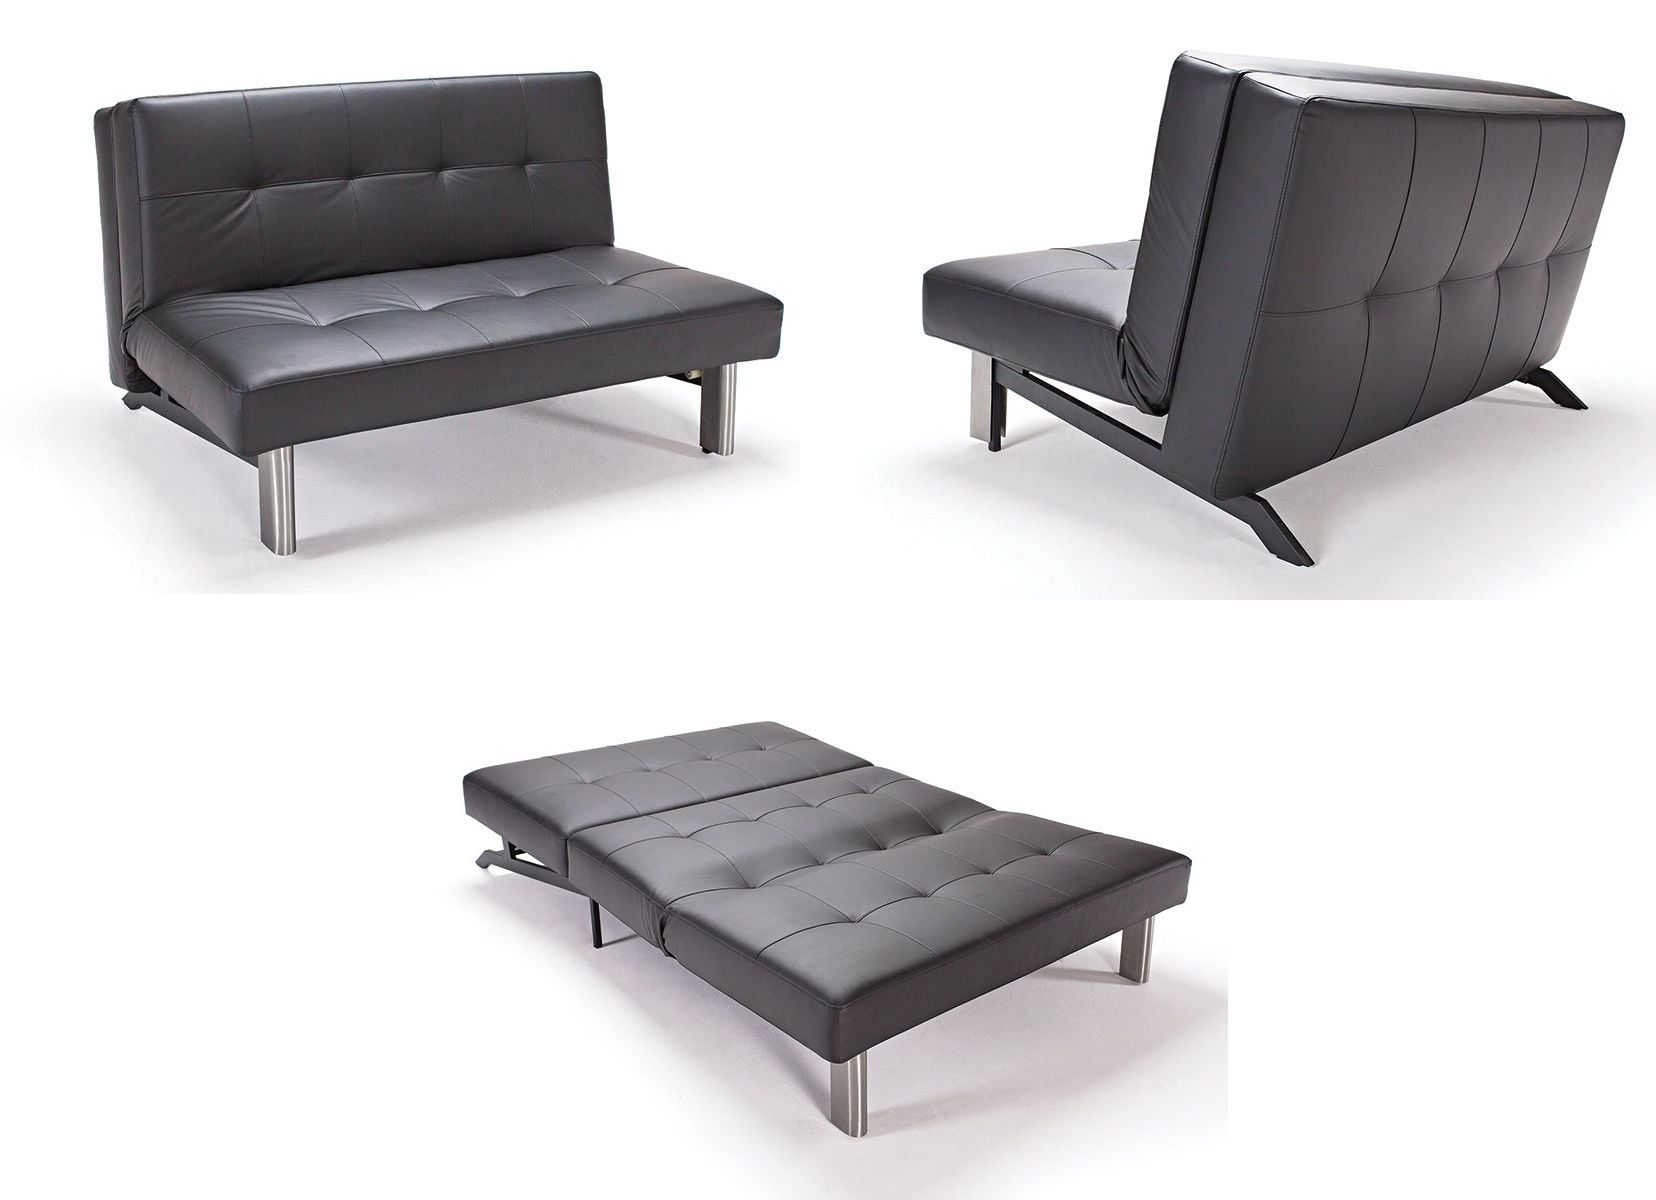 The modern Tjaze sofa from Innovation USA is an innovative, compact ...